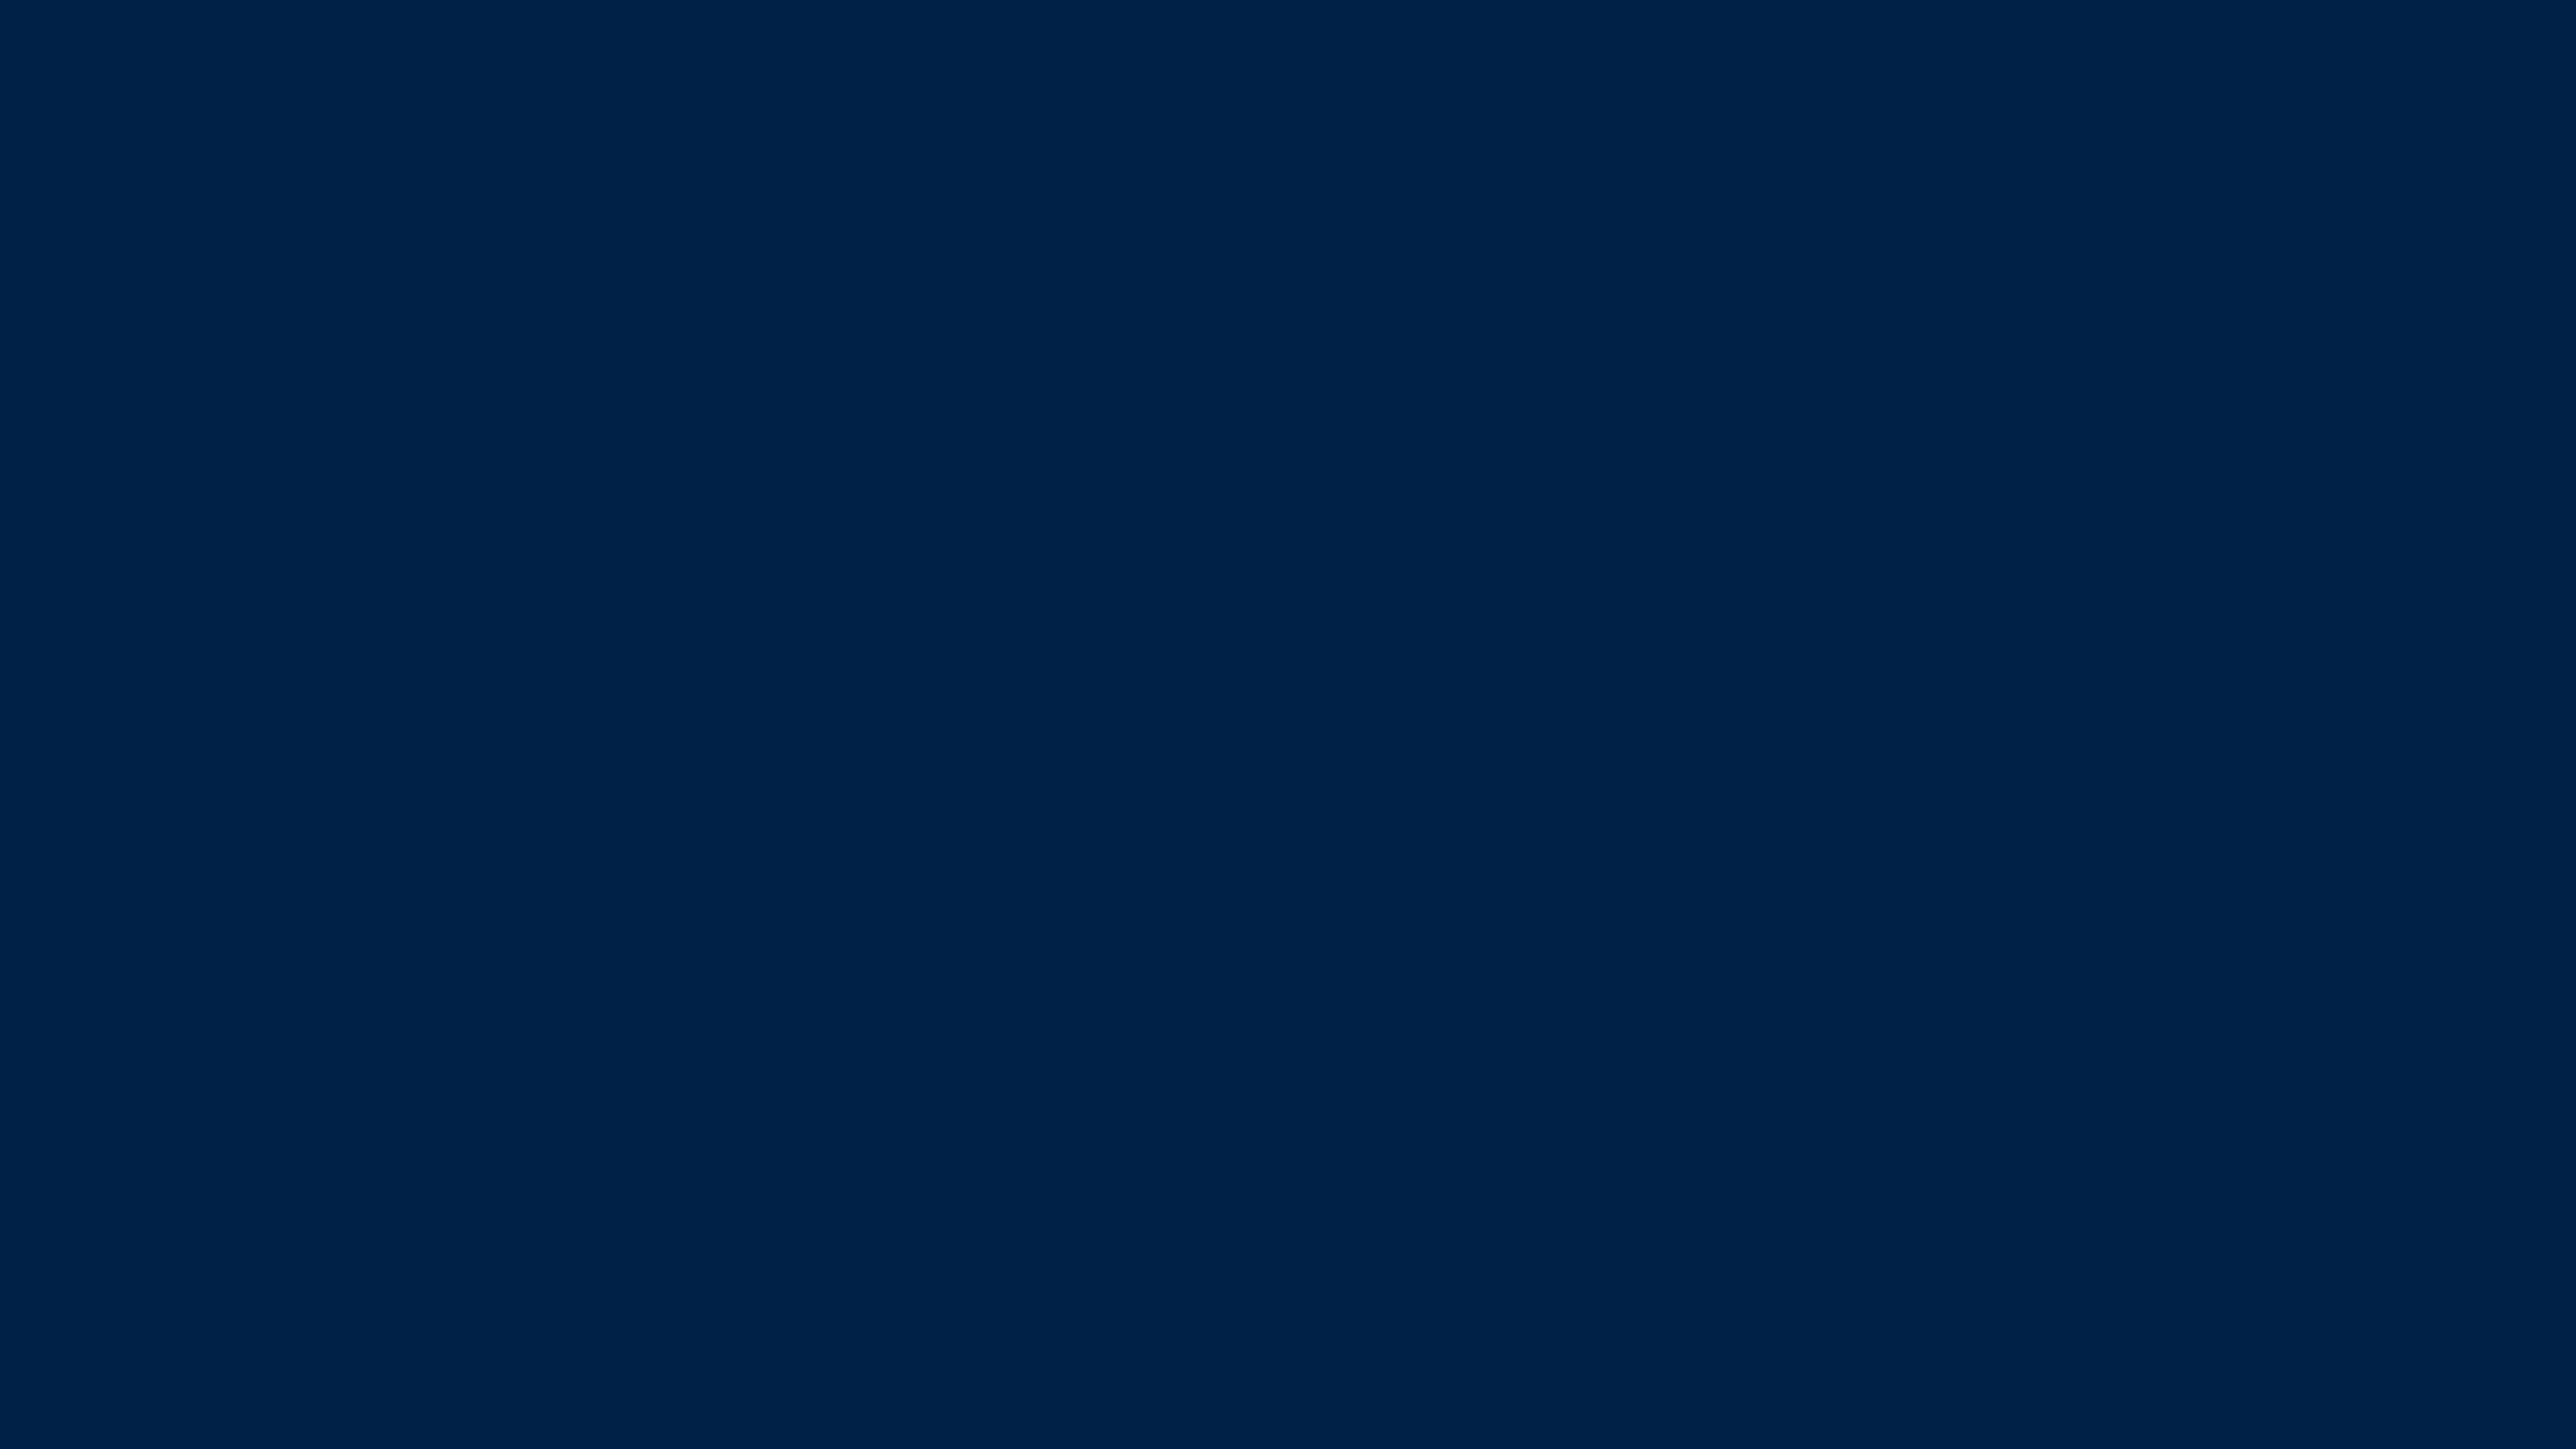 5120x2880 Oxford Blue Solid Color Background